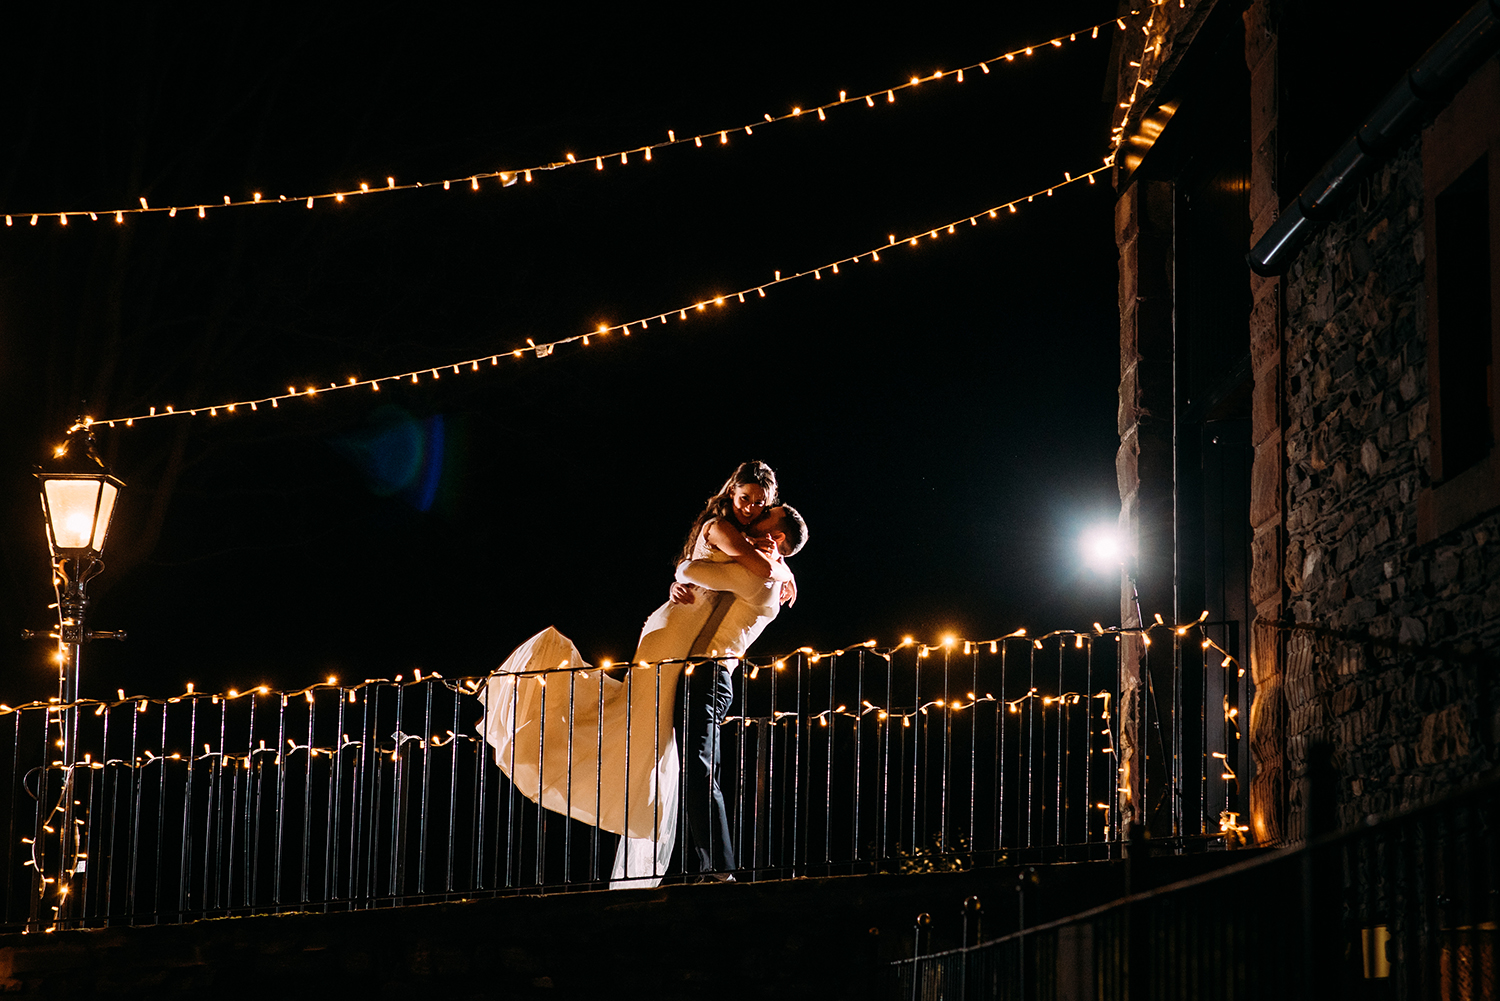 night time shot of the groom lifting the bride in the air